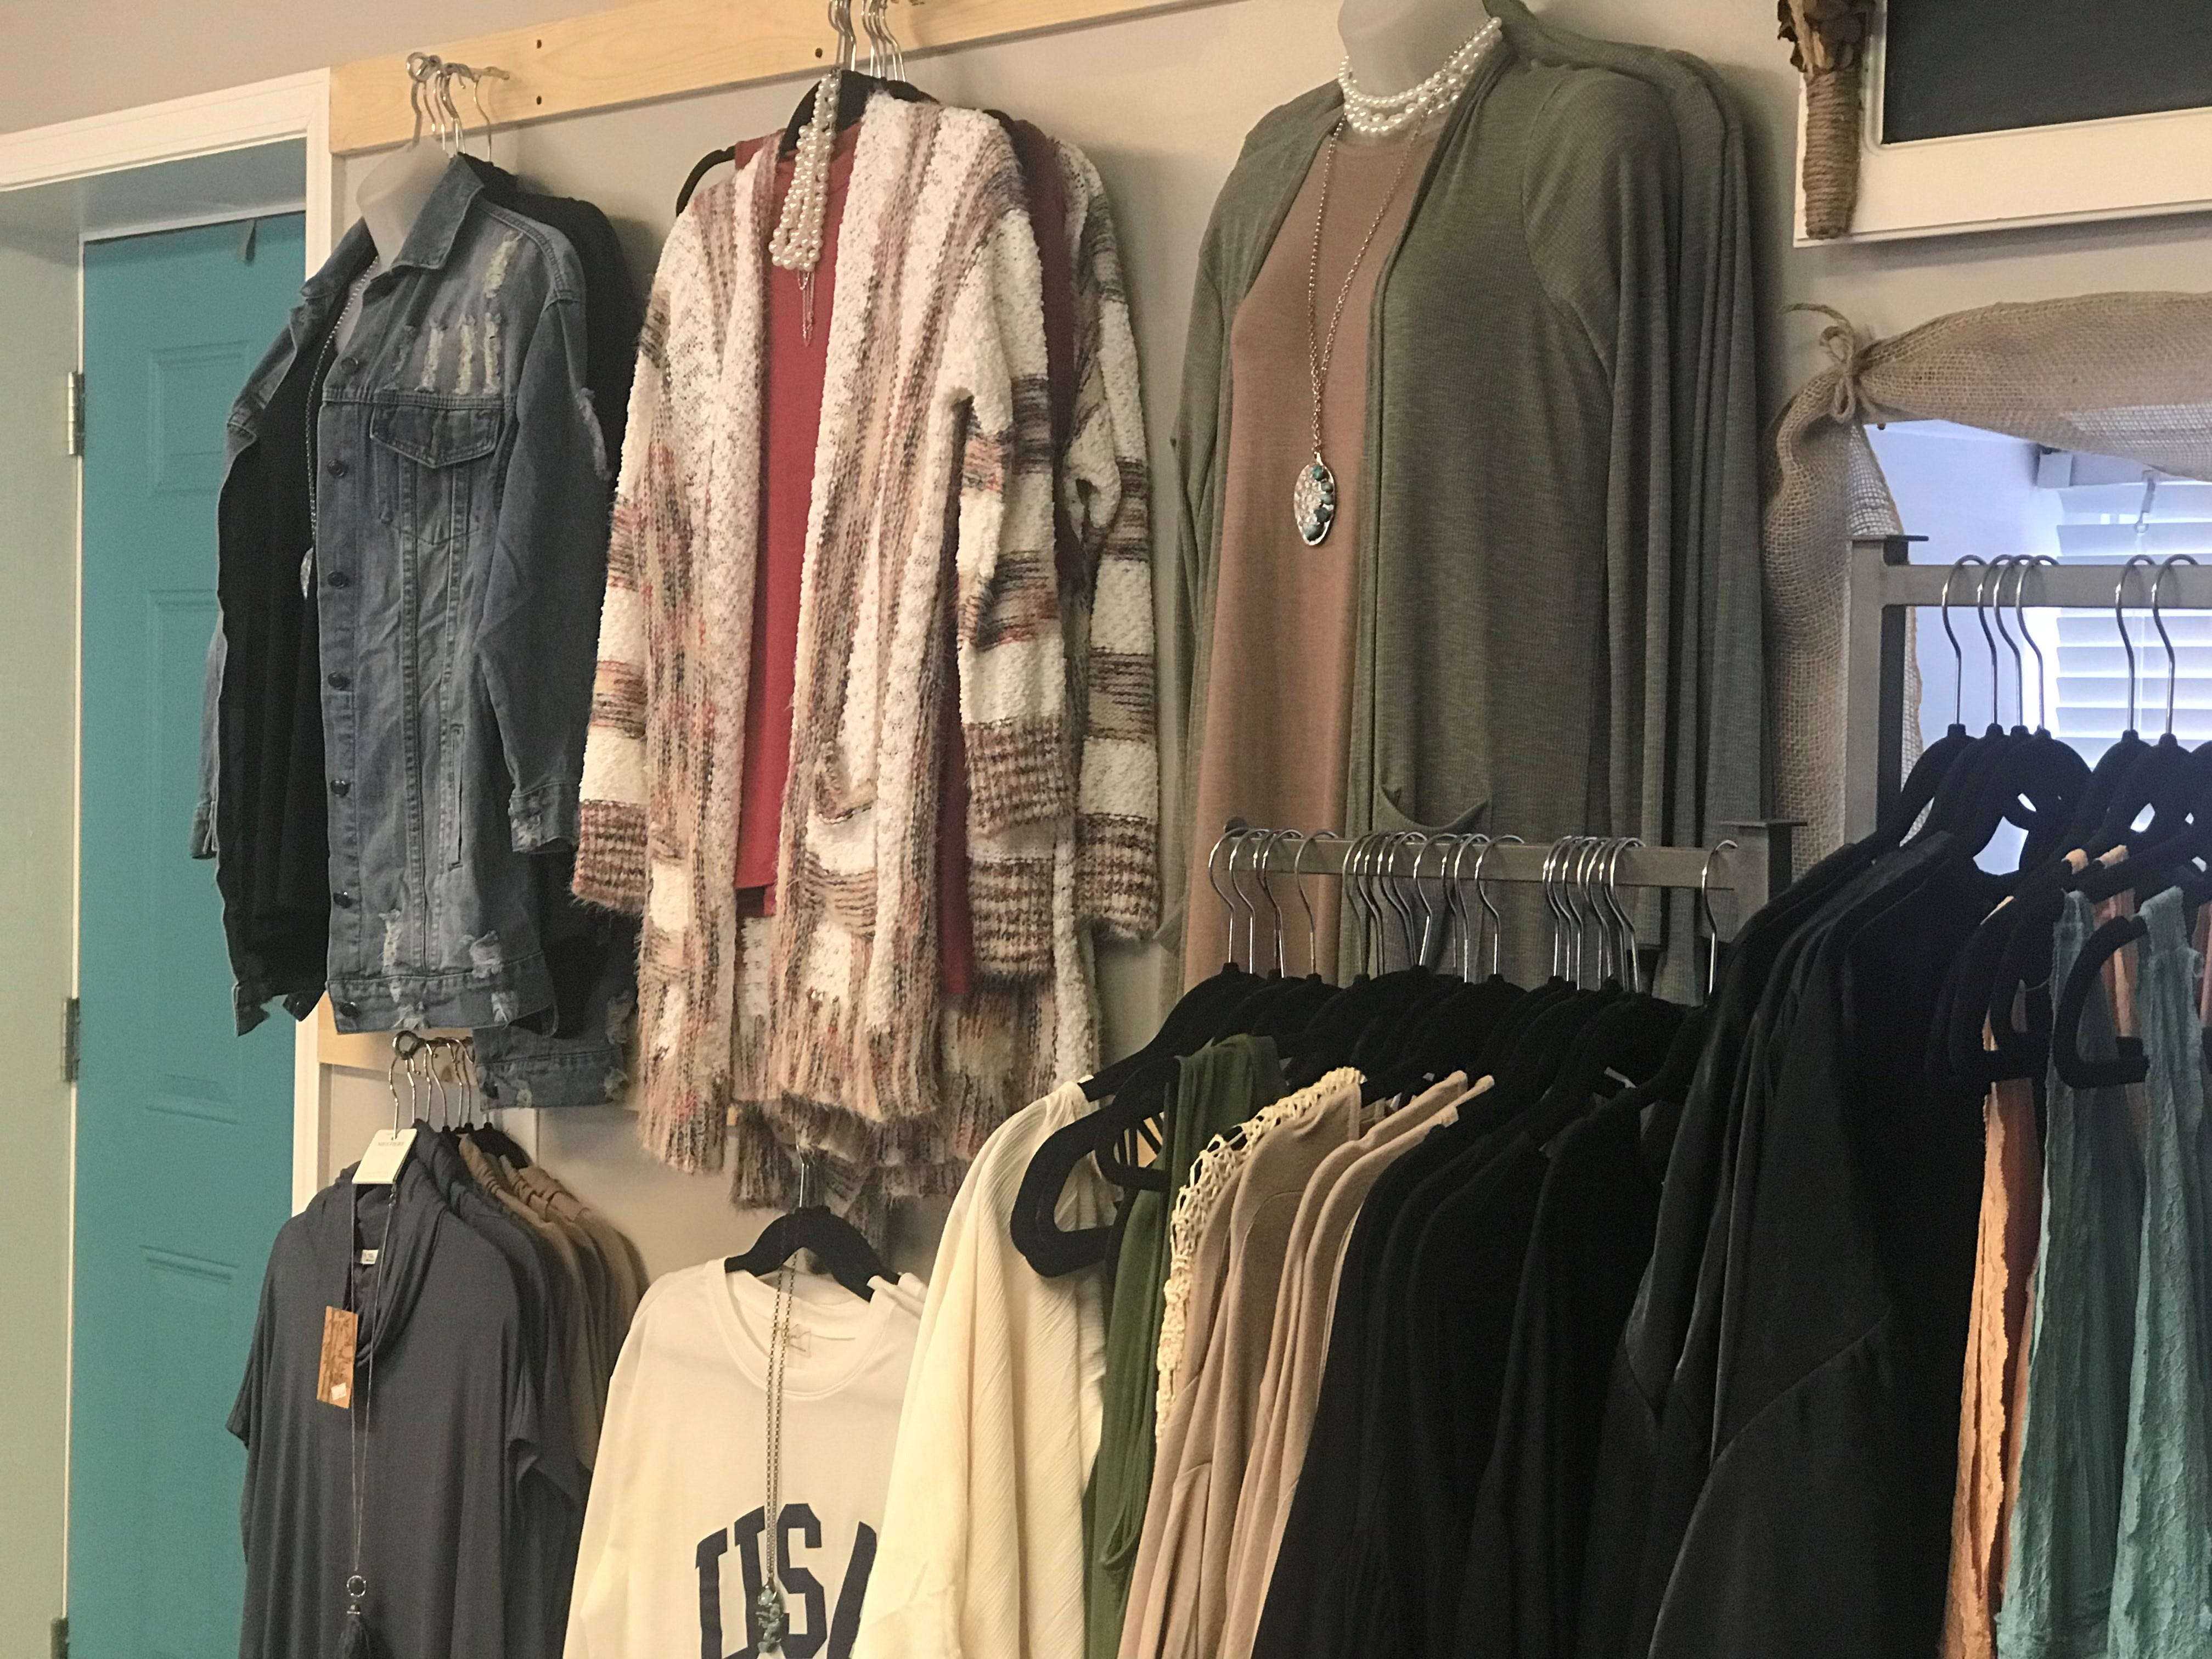 Realtors Cindee Leonard and Nicole Simmons opened Southern Grace and Lace Boutique, located at 2515 Highway 49 East in Pleasant View.